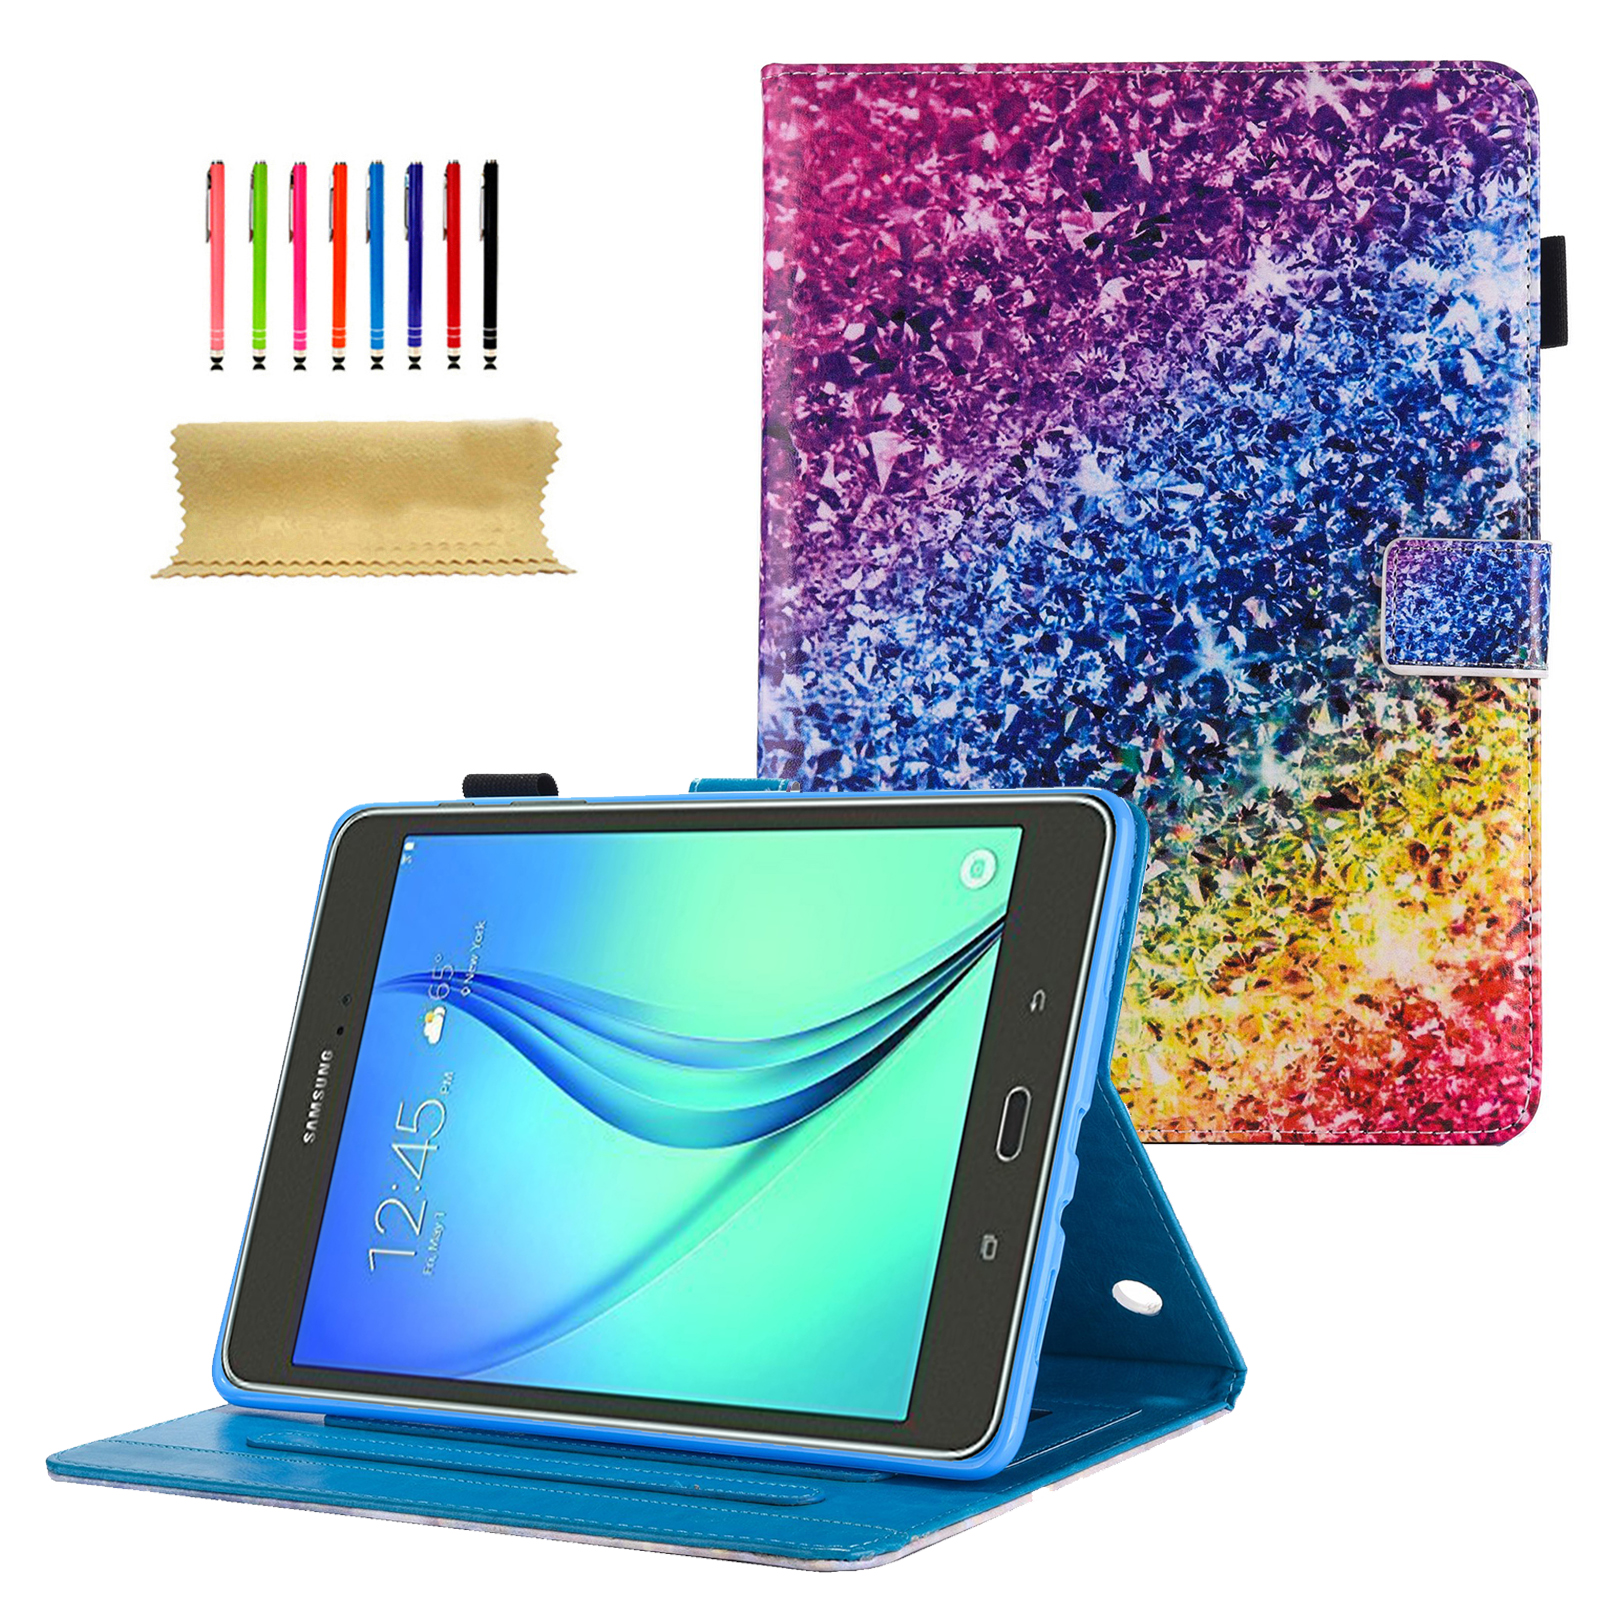 Galaxy Tab A 8.0 Case, Goodest PU Leather Folio Smart Case Cover with Auto Wake/Sleep & Card Slots for Samsung Galaxy Tab A 8.0 Inch Tablet 2015 Release( SM-T350/ SM-P350 Version ONLY), Silver Sand